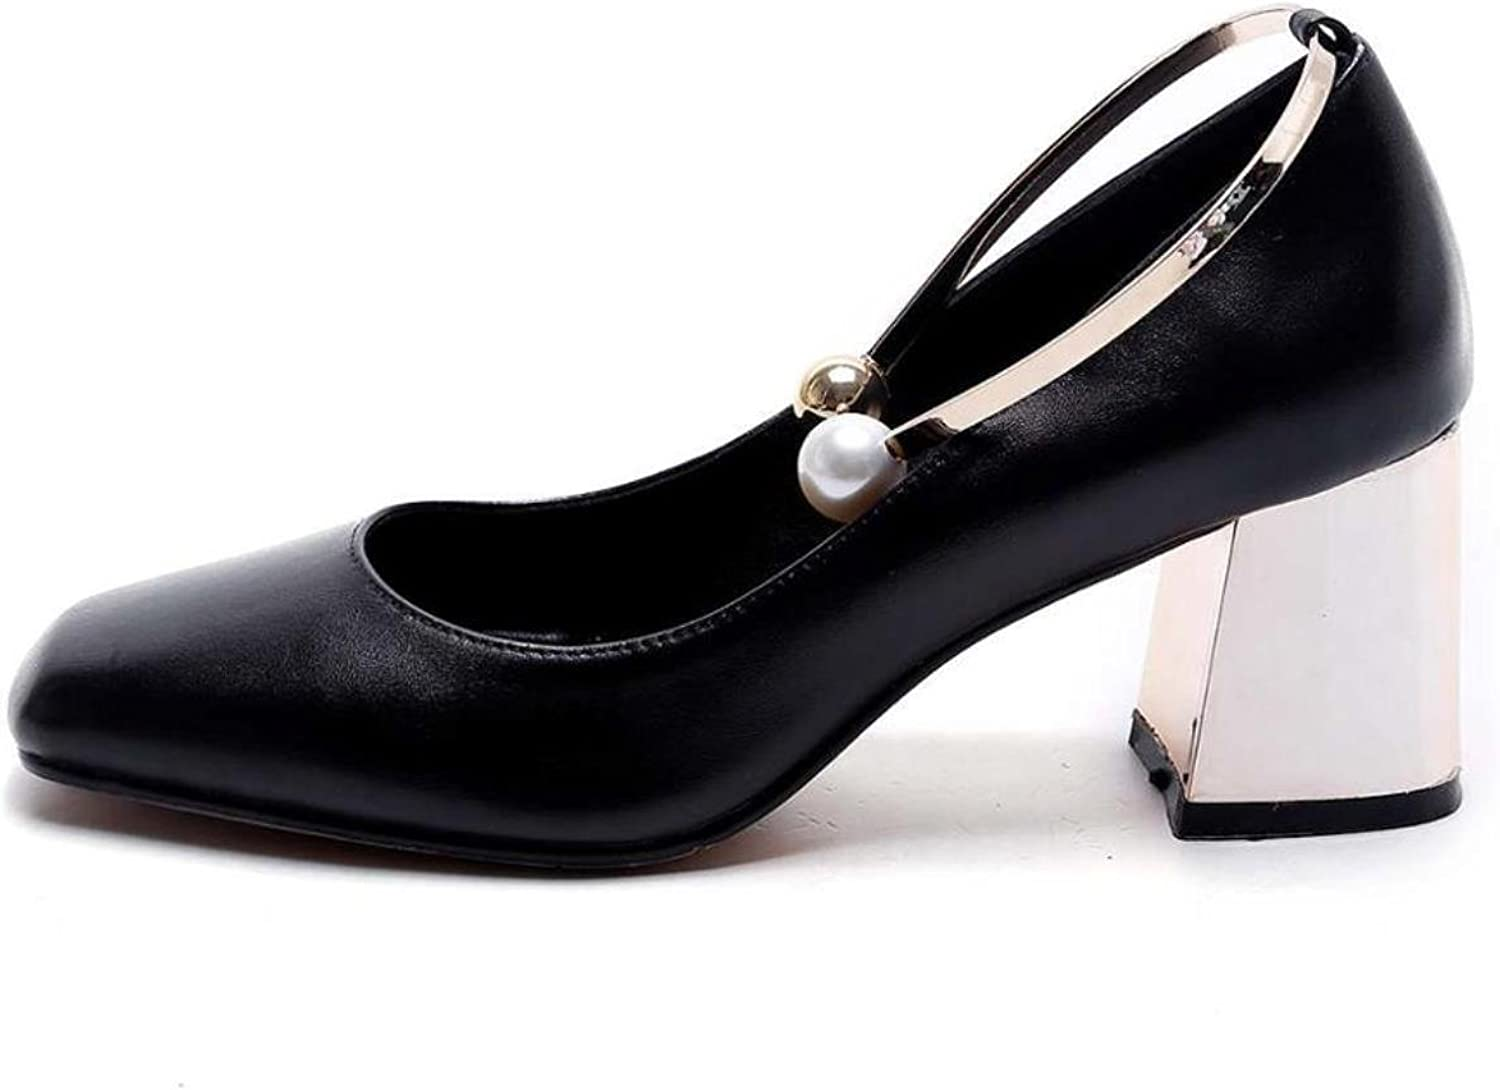 Fashion Party Wedding Thick High Heels Genuine Leather Pearl Metal Superstar Shallow Pumps Round Toe Women Brand shoes